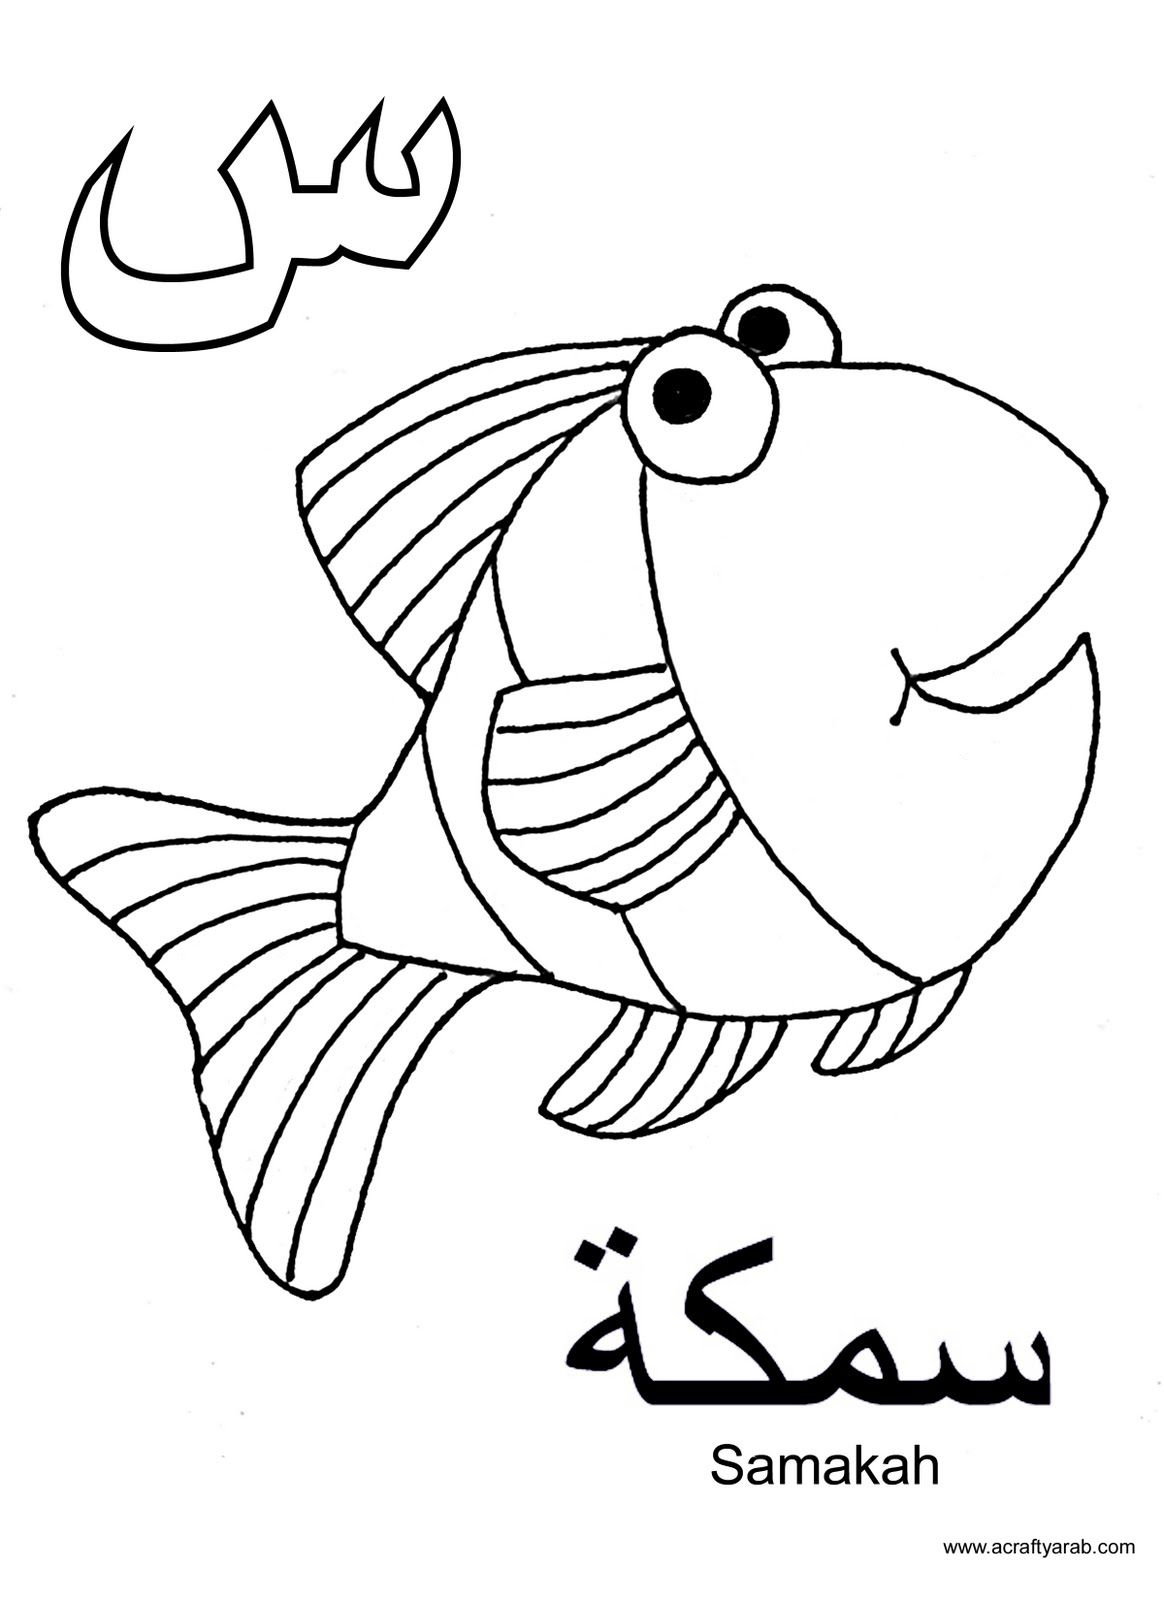 A Crafty Arab: Arabic Alphabet colouring pages...Sa is for Samakah ...